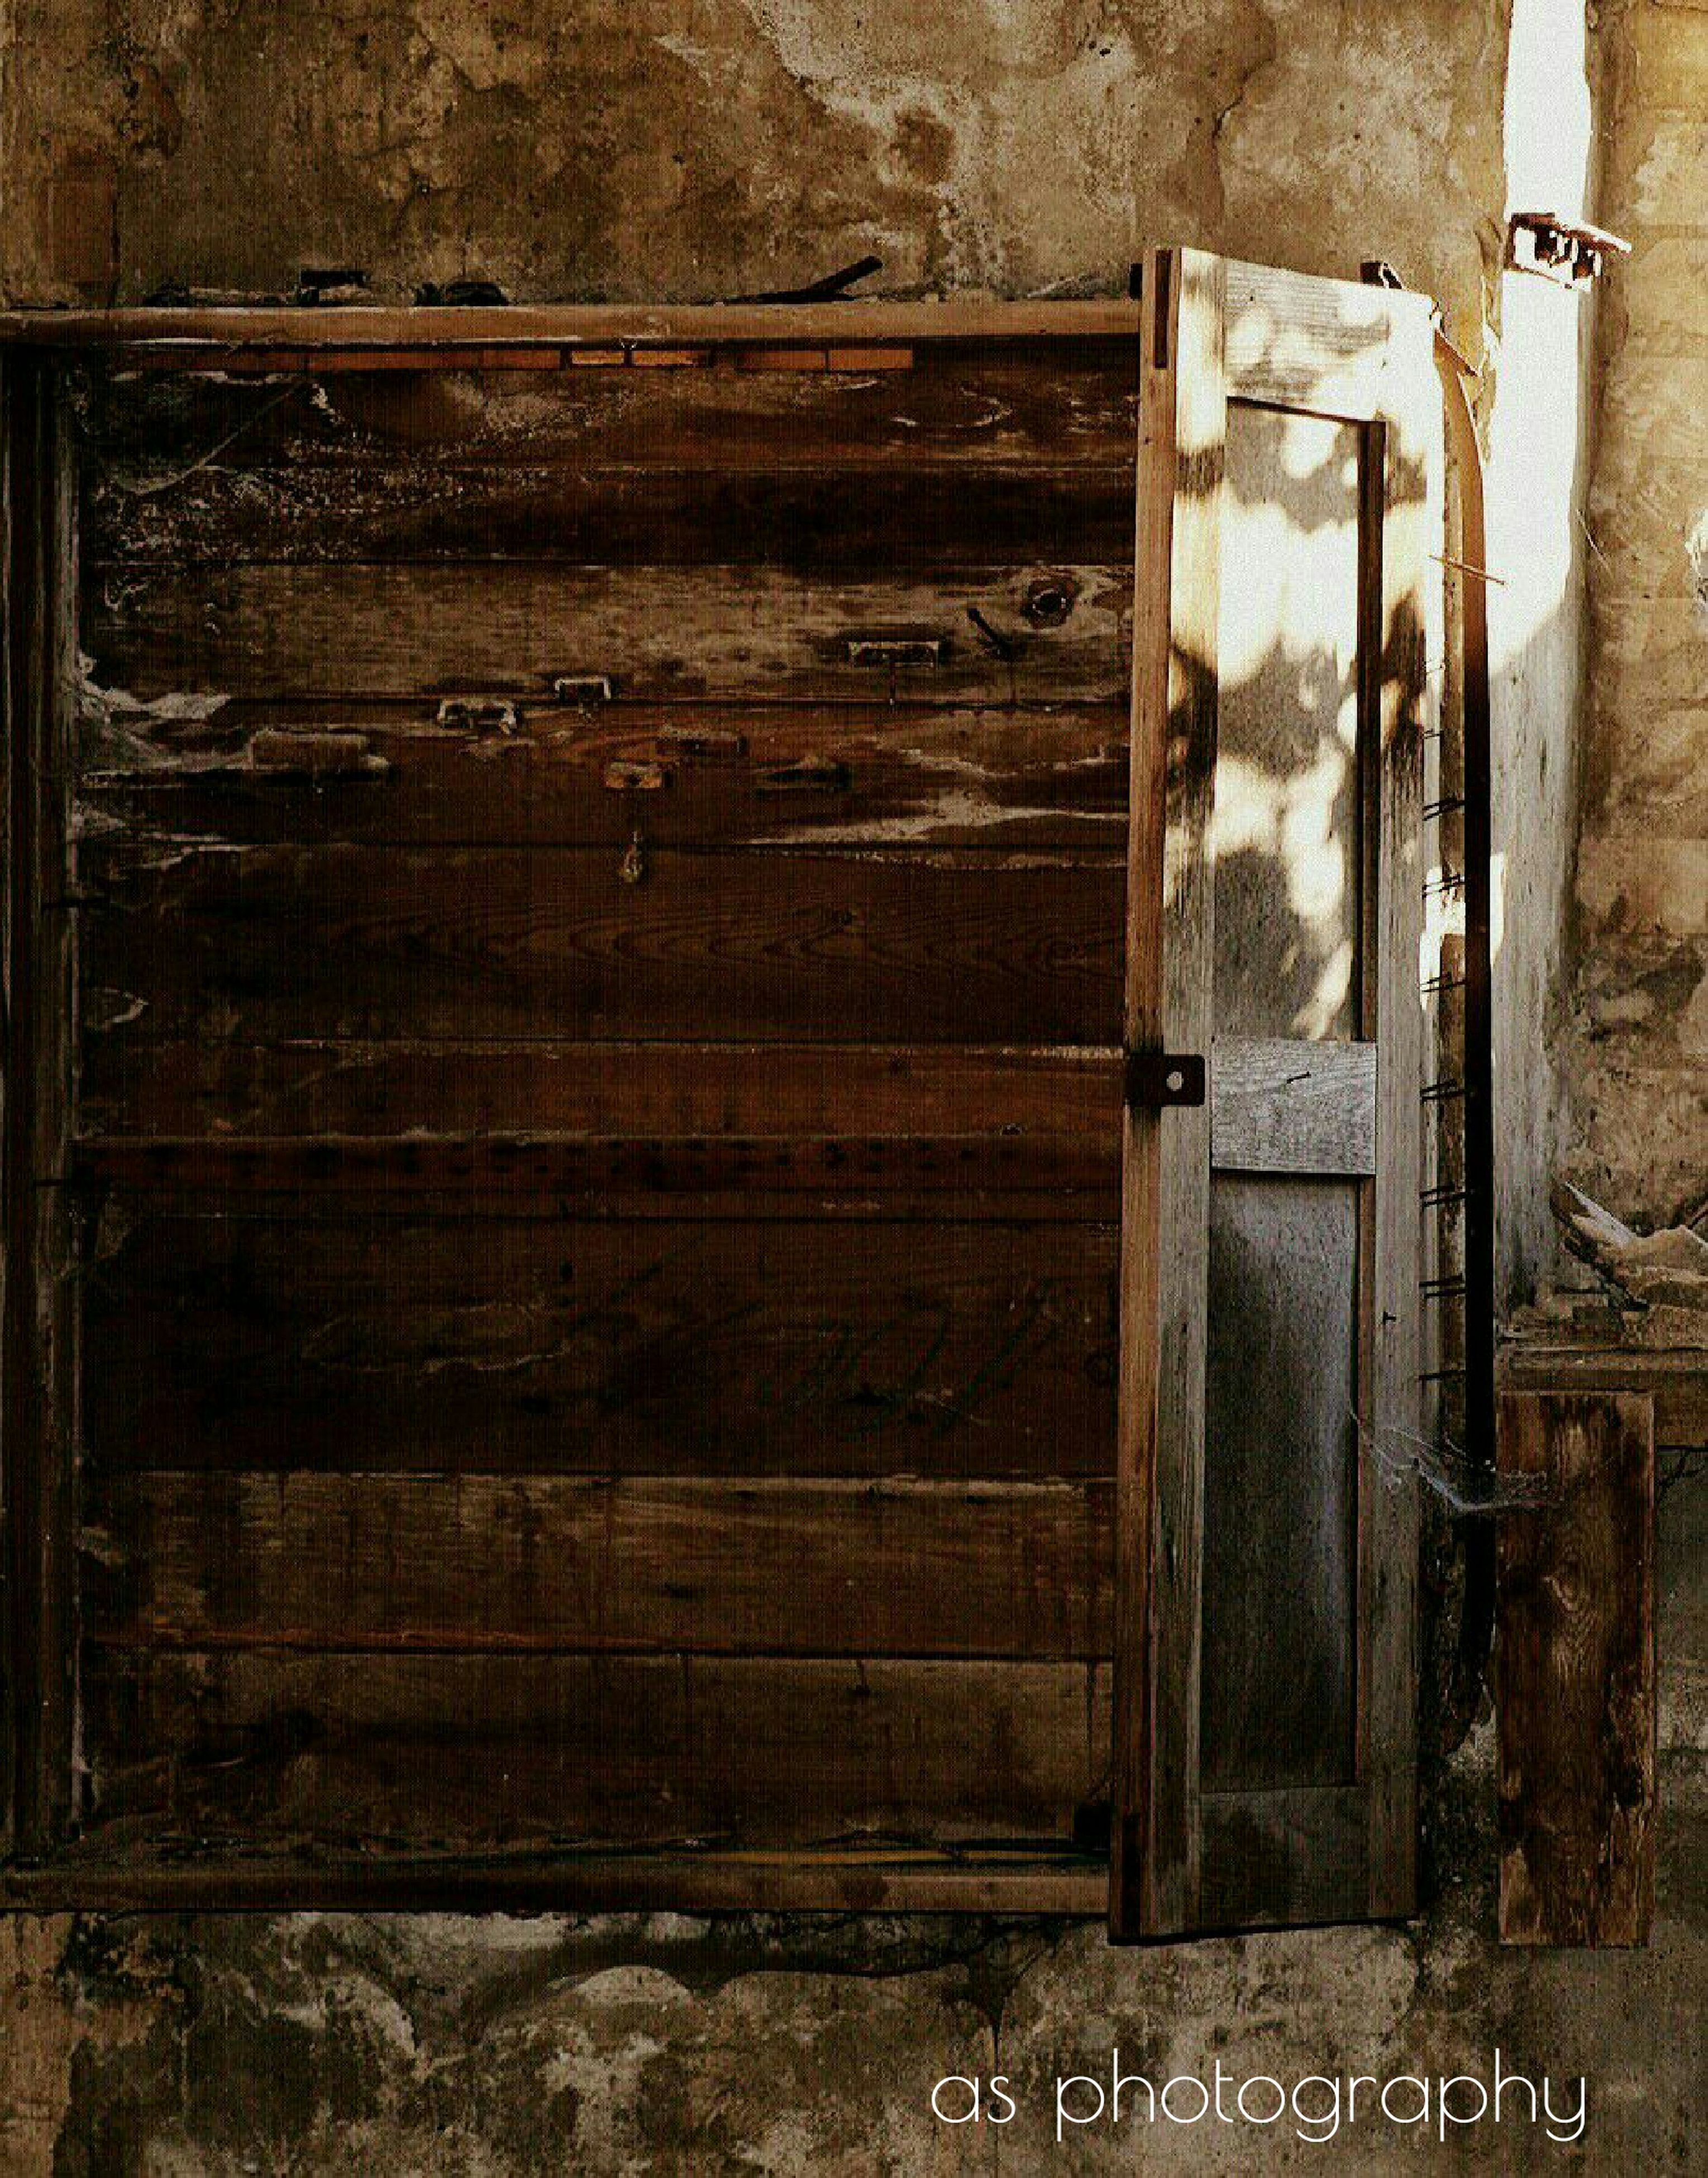 old, deterioration, closed, abandoned, obsolete, damaged, day, weathered, brown, bad condition, no people